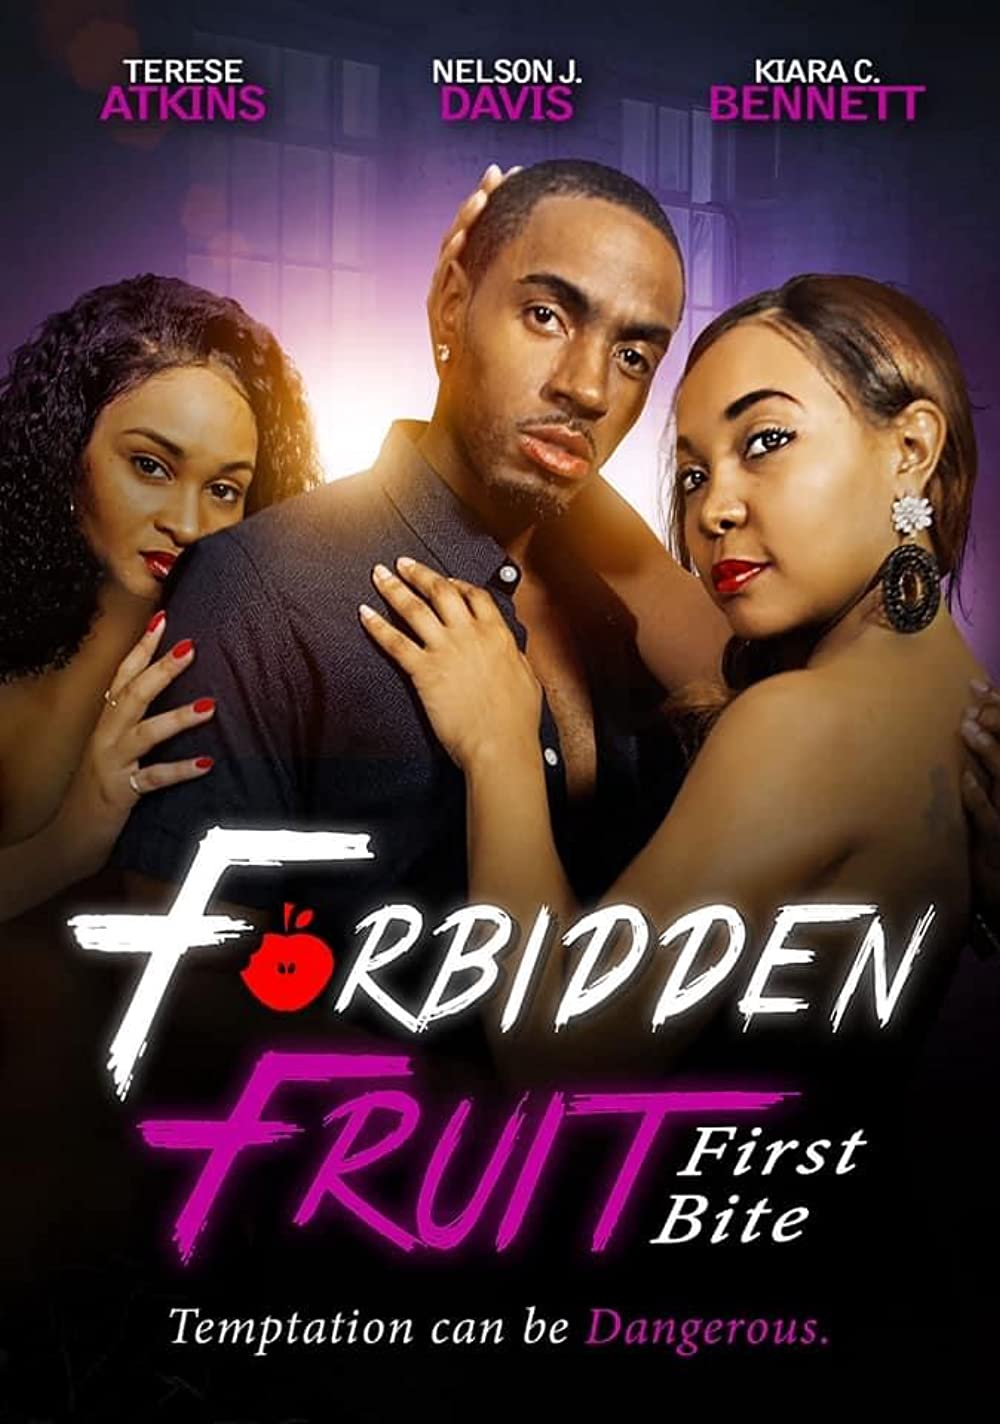 Forbidden Fruit First Bite 2021 English 233MB HDRip ESubs Download